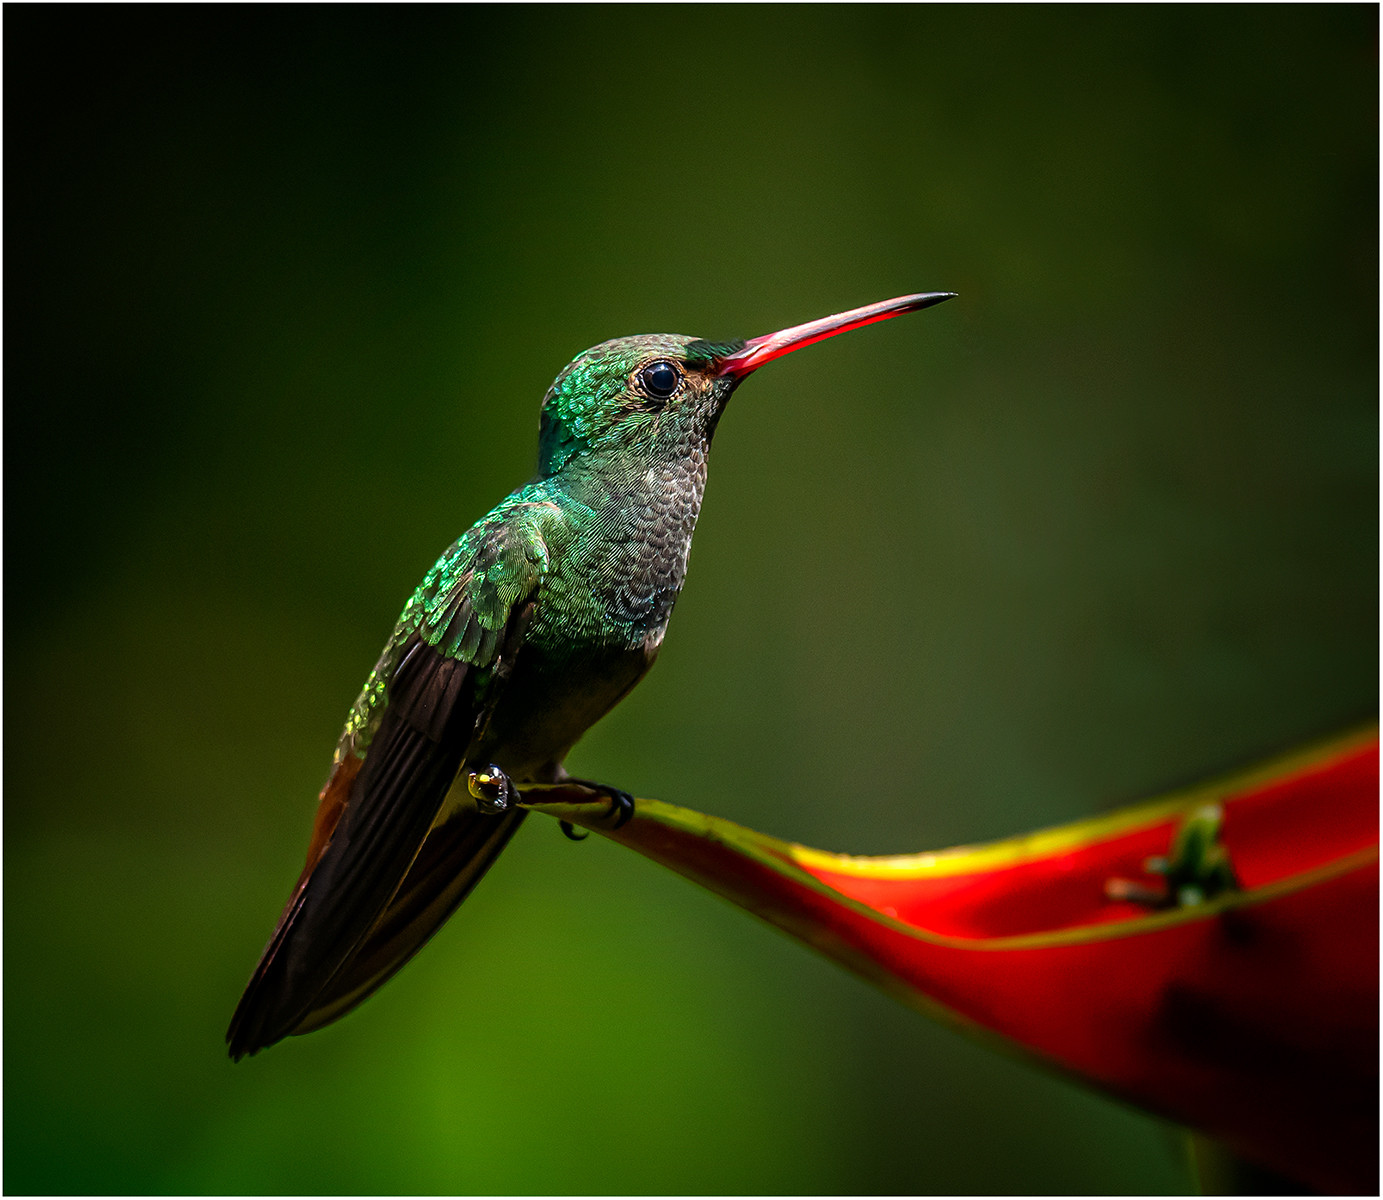 'Rufous-tailed Hummingbird' by Brendan Hinds (13 marks)  -  CB Camera Club